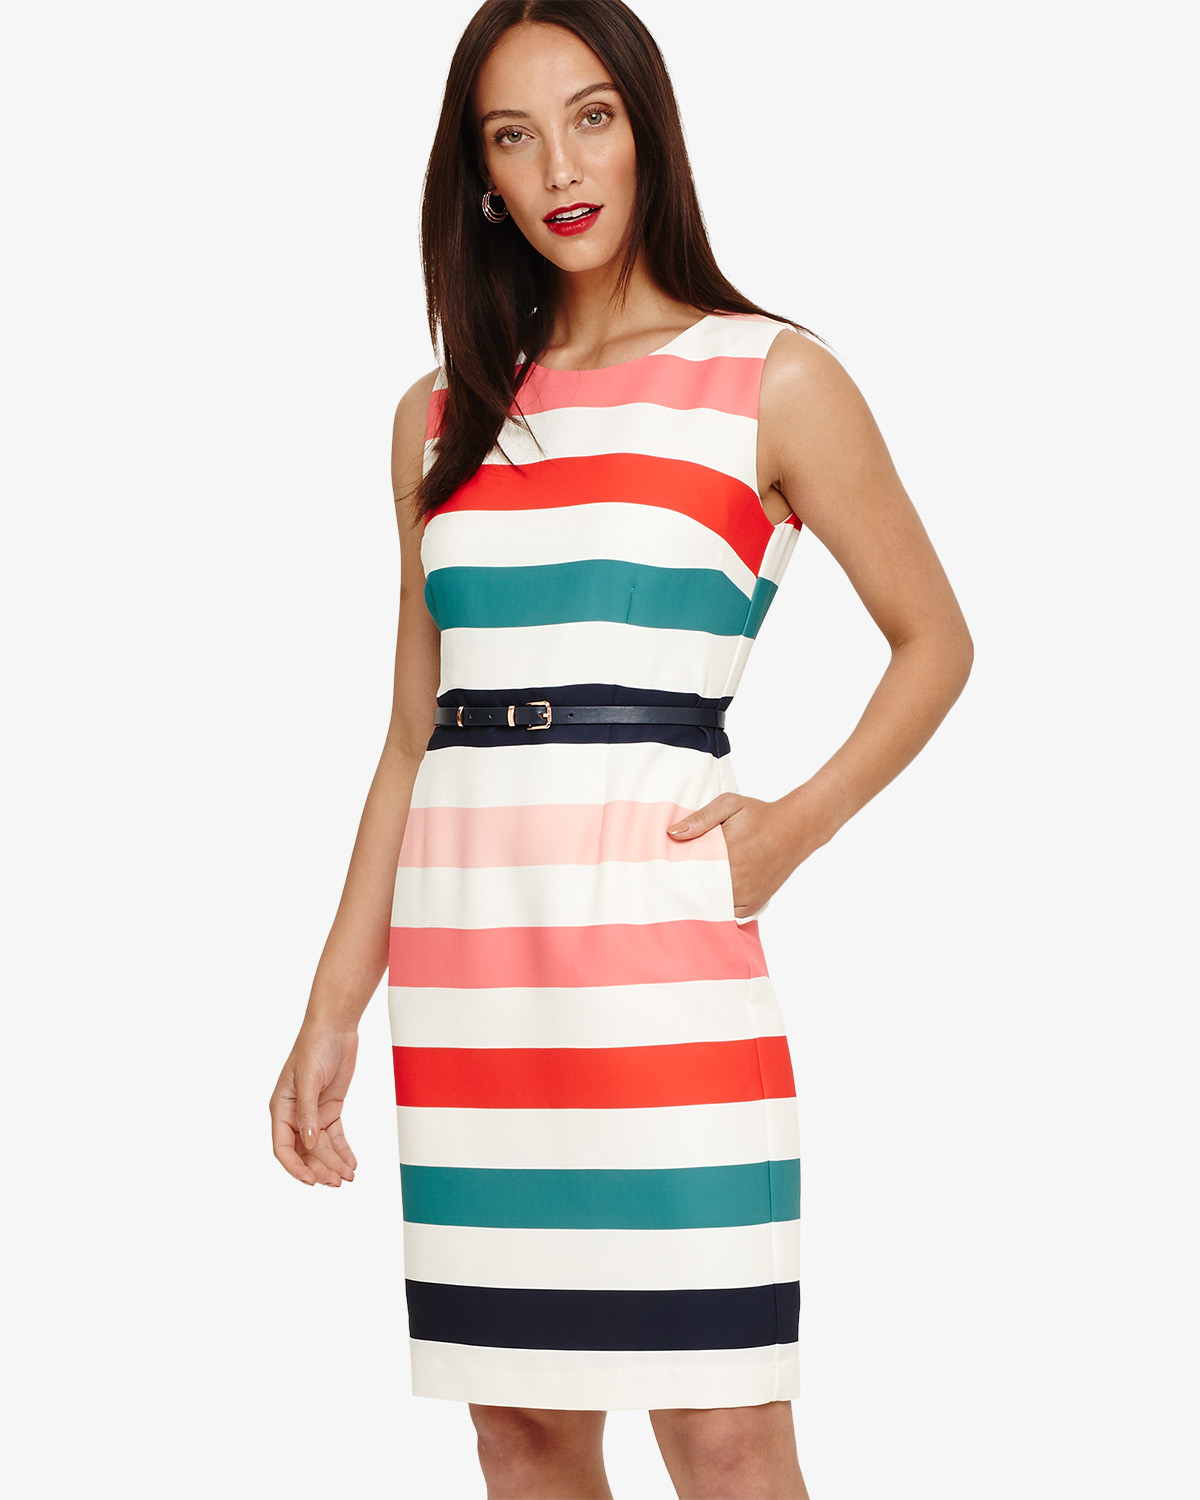 Faye Striped Dress Phase Eight